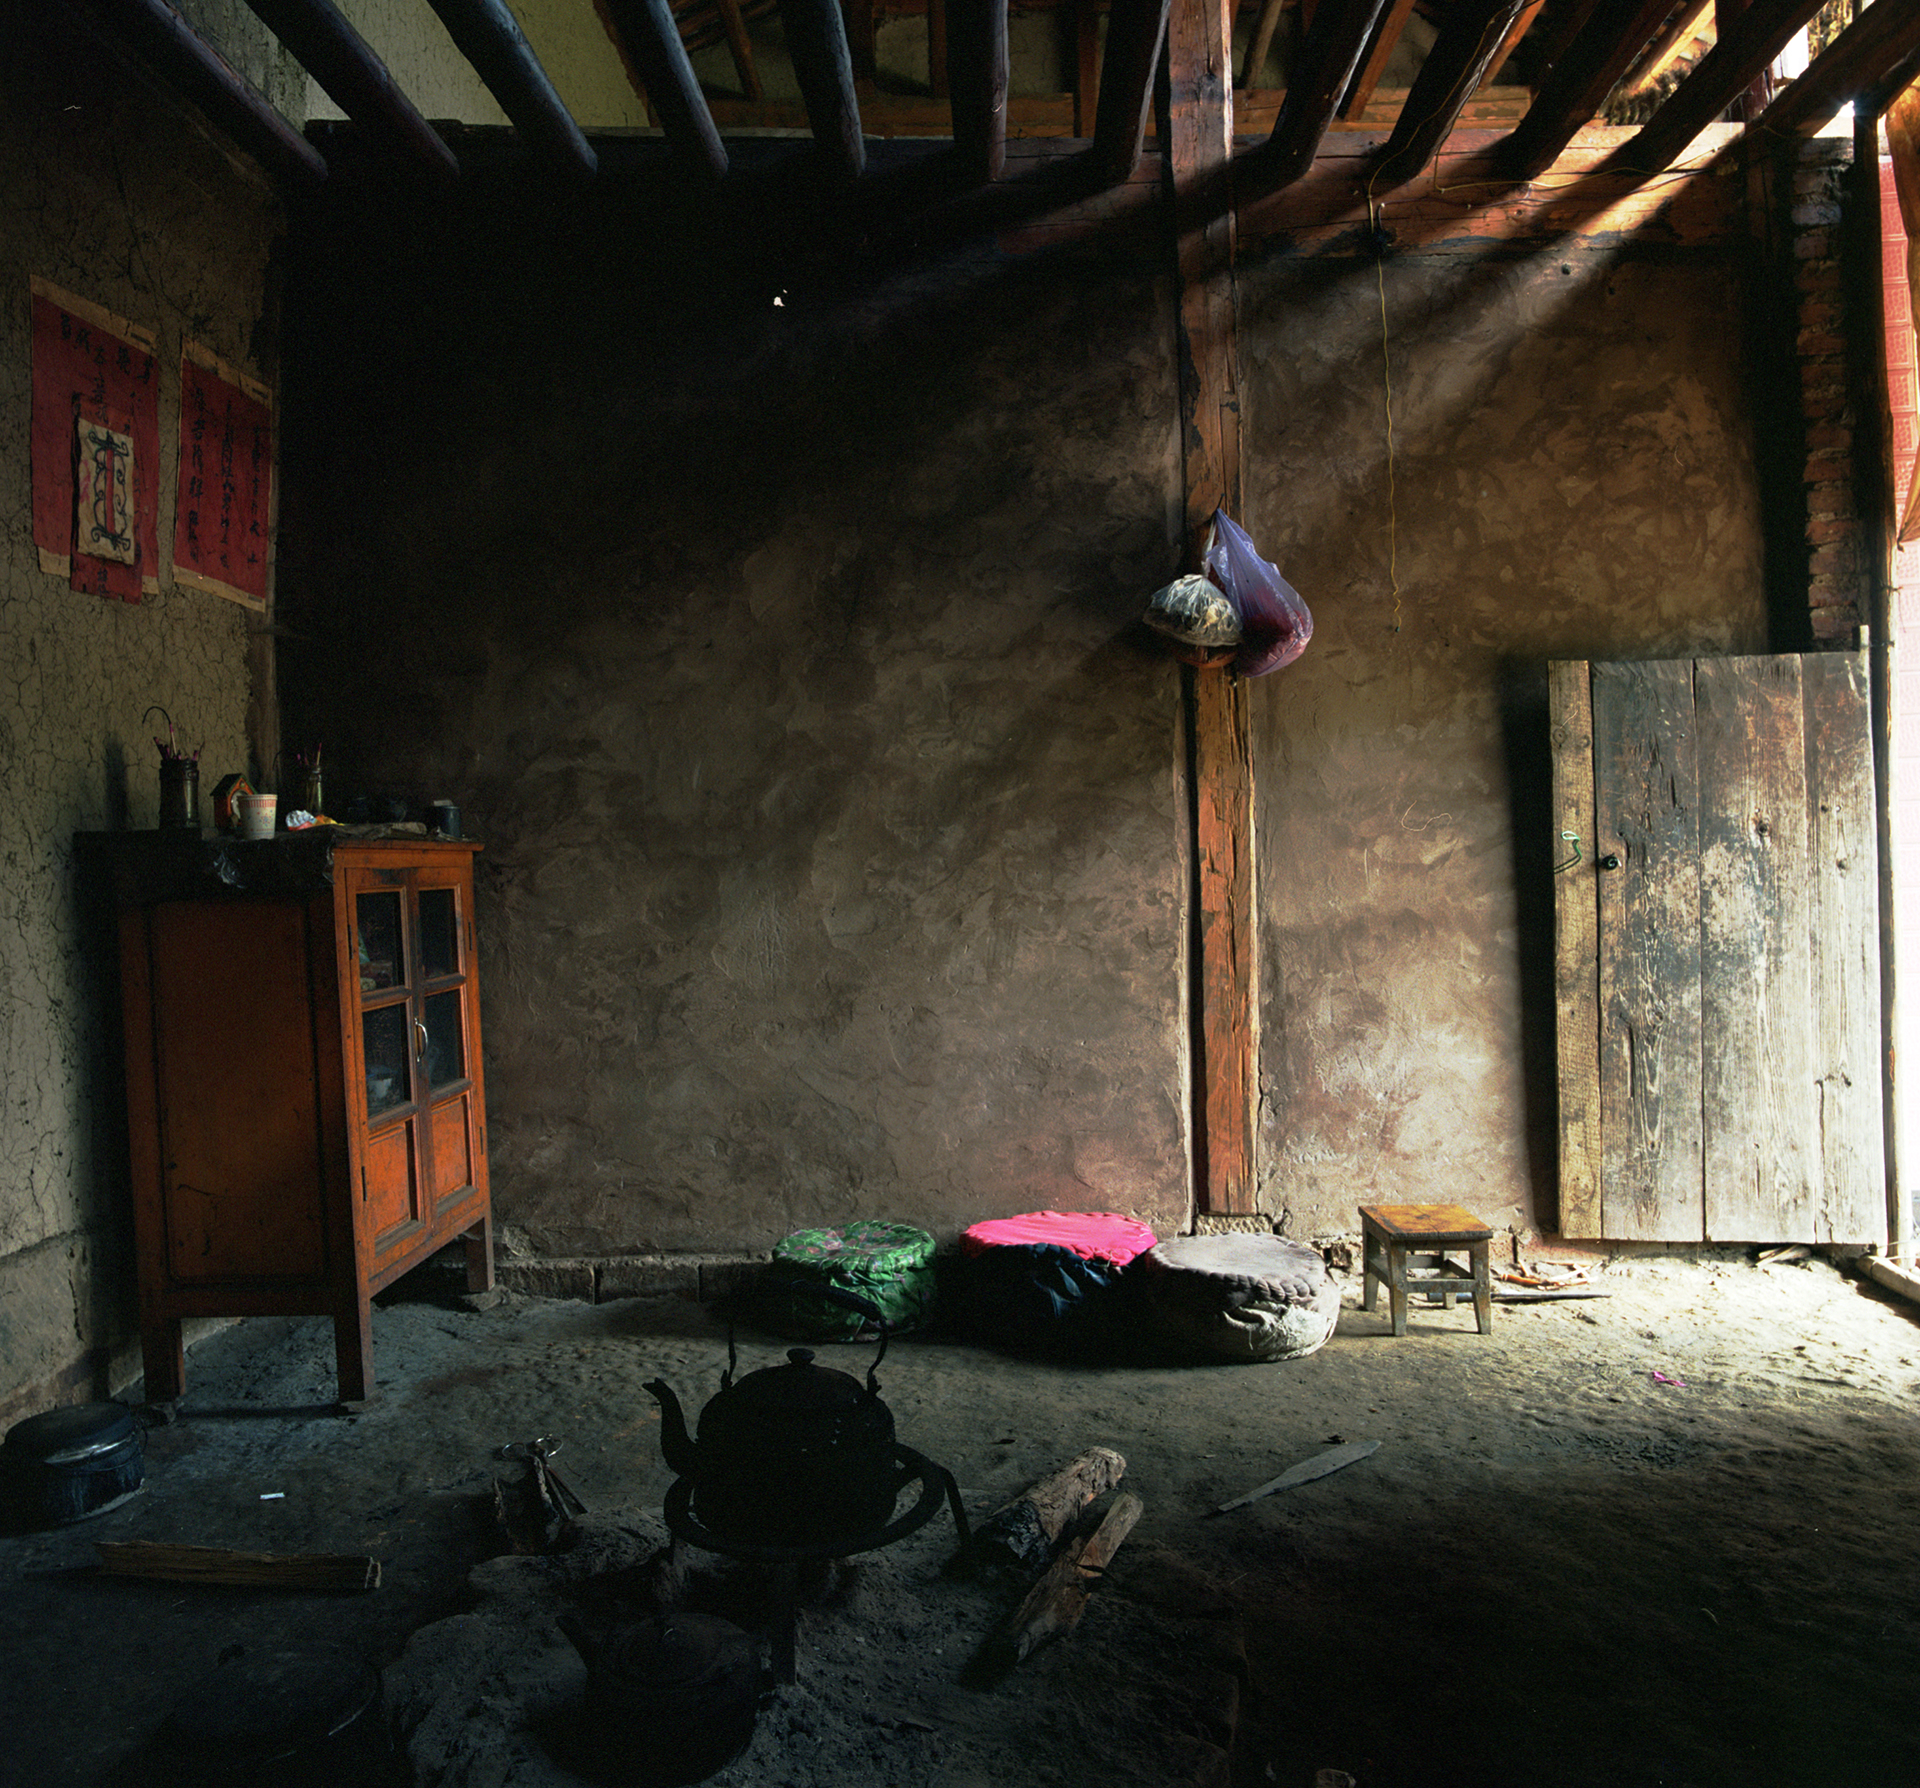 Yunnan 2008 - living room/kitchen in a Lezo village.